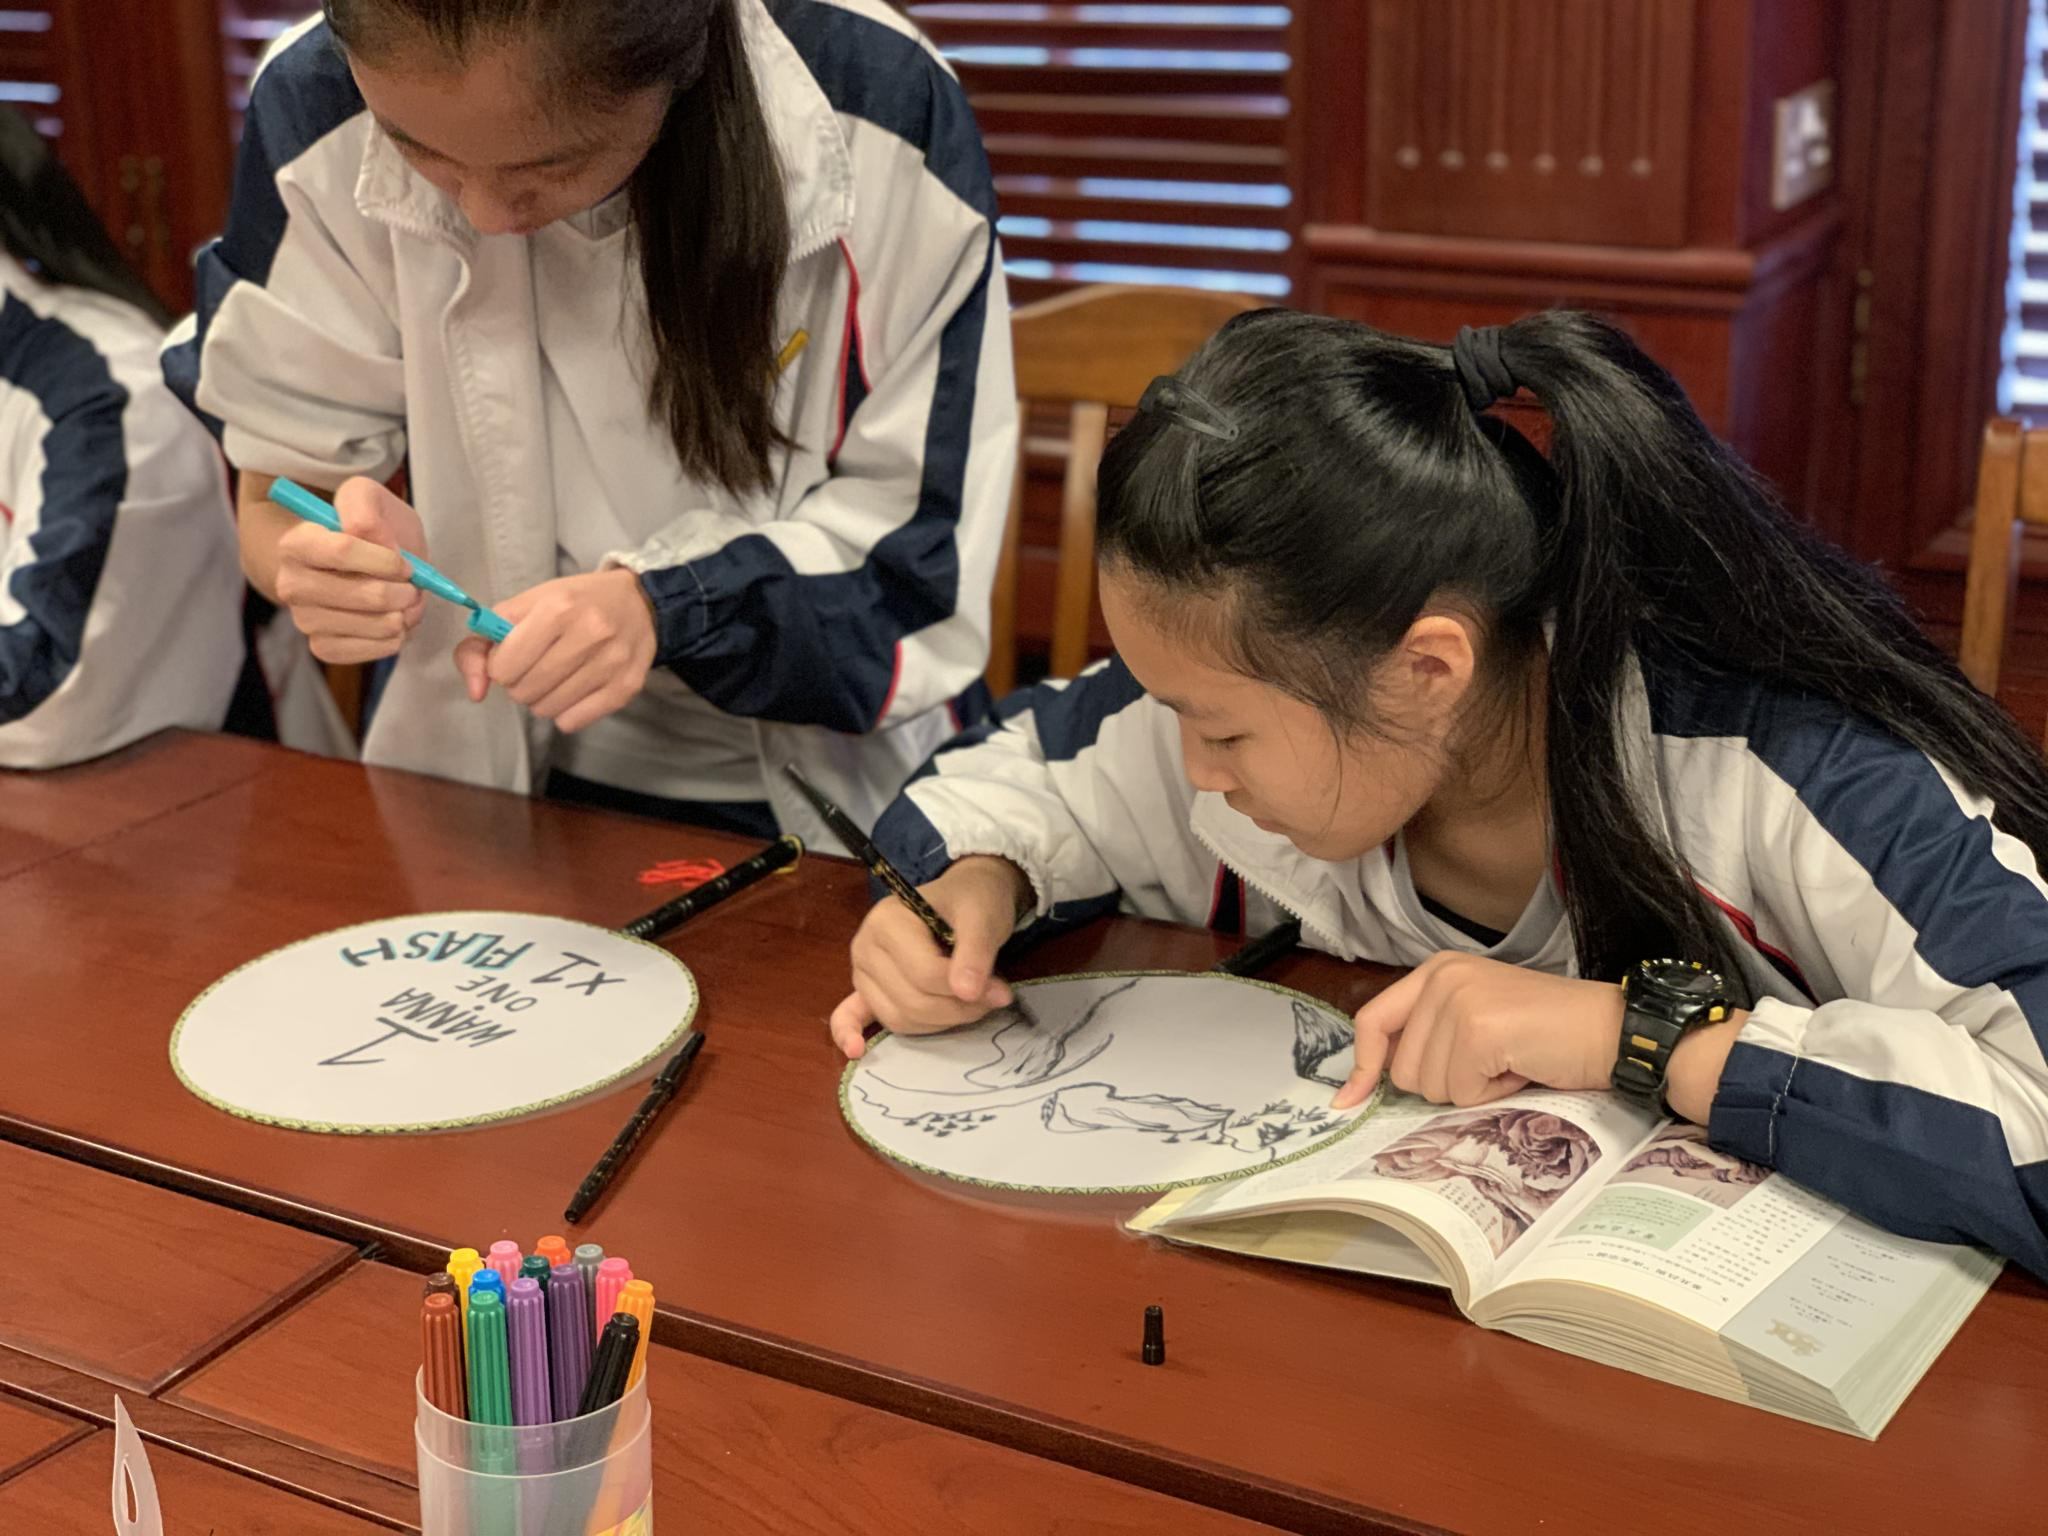 The girl is getting inspiration from the books about Chinese painting.